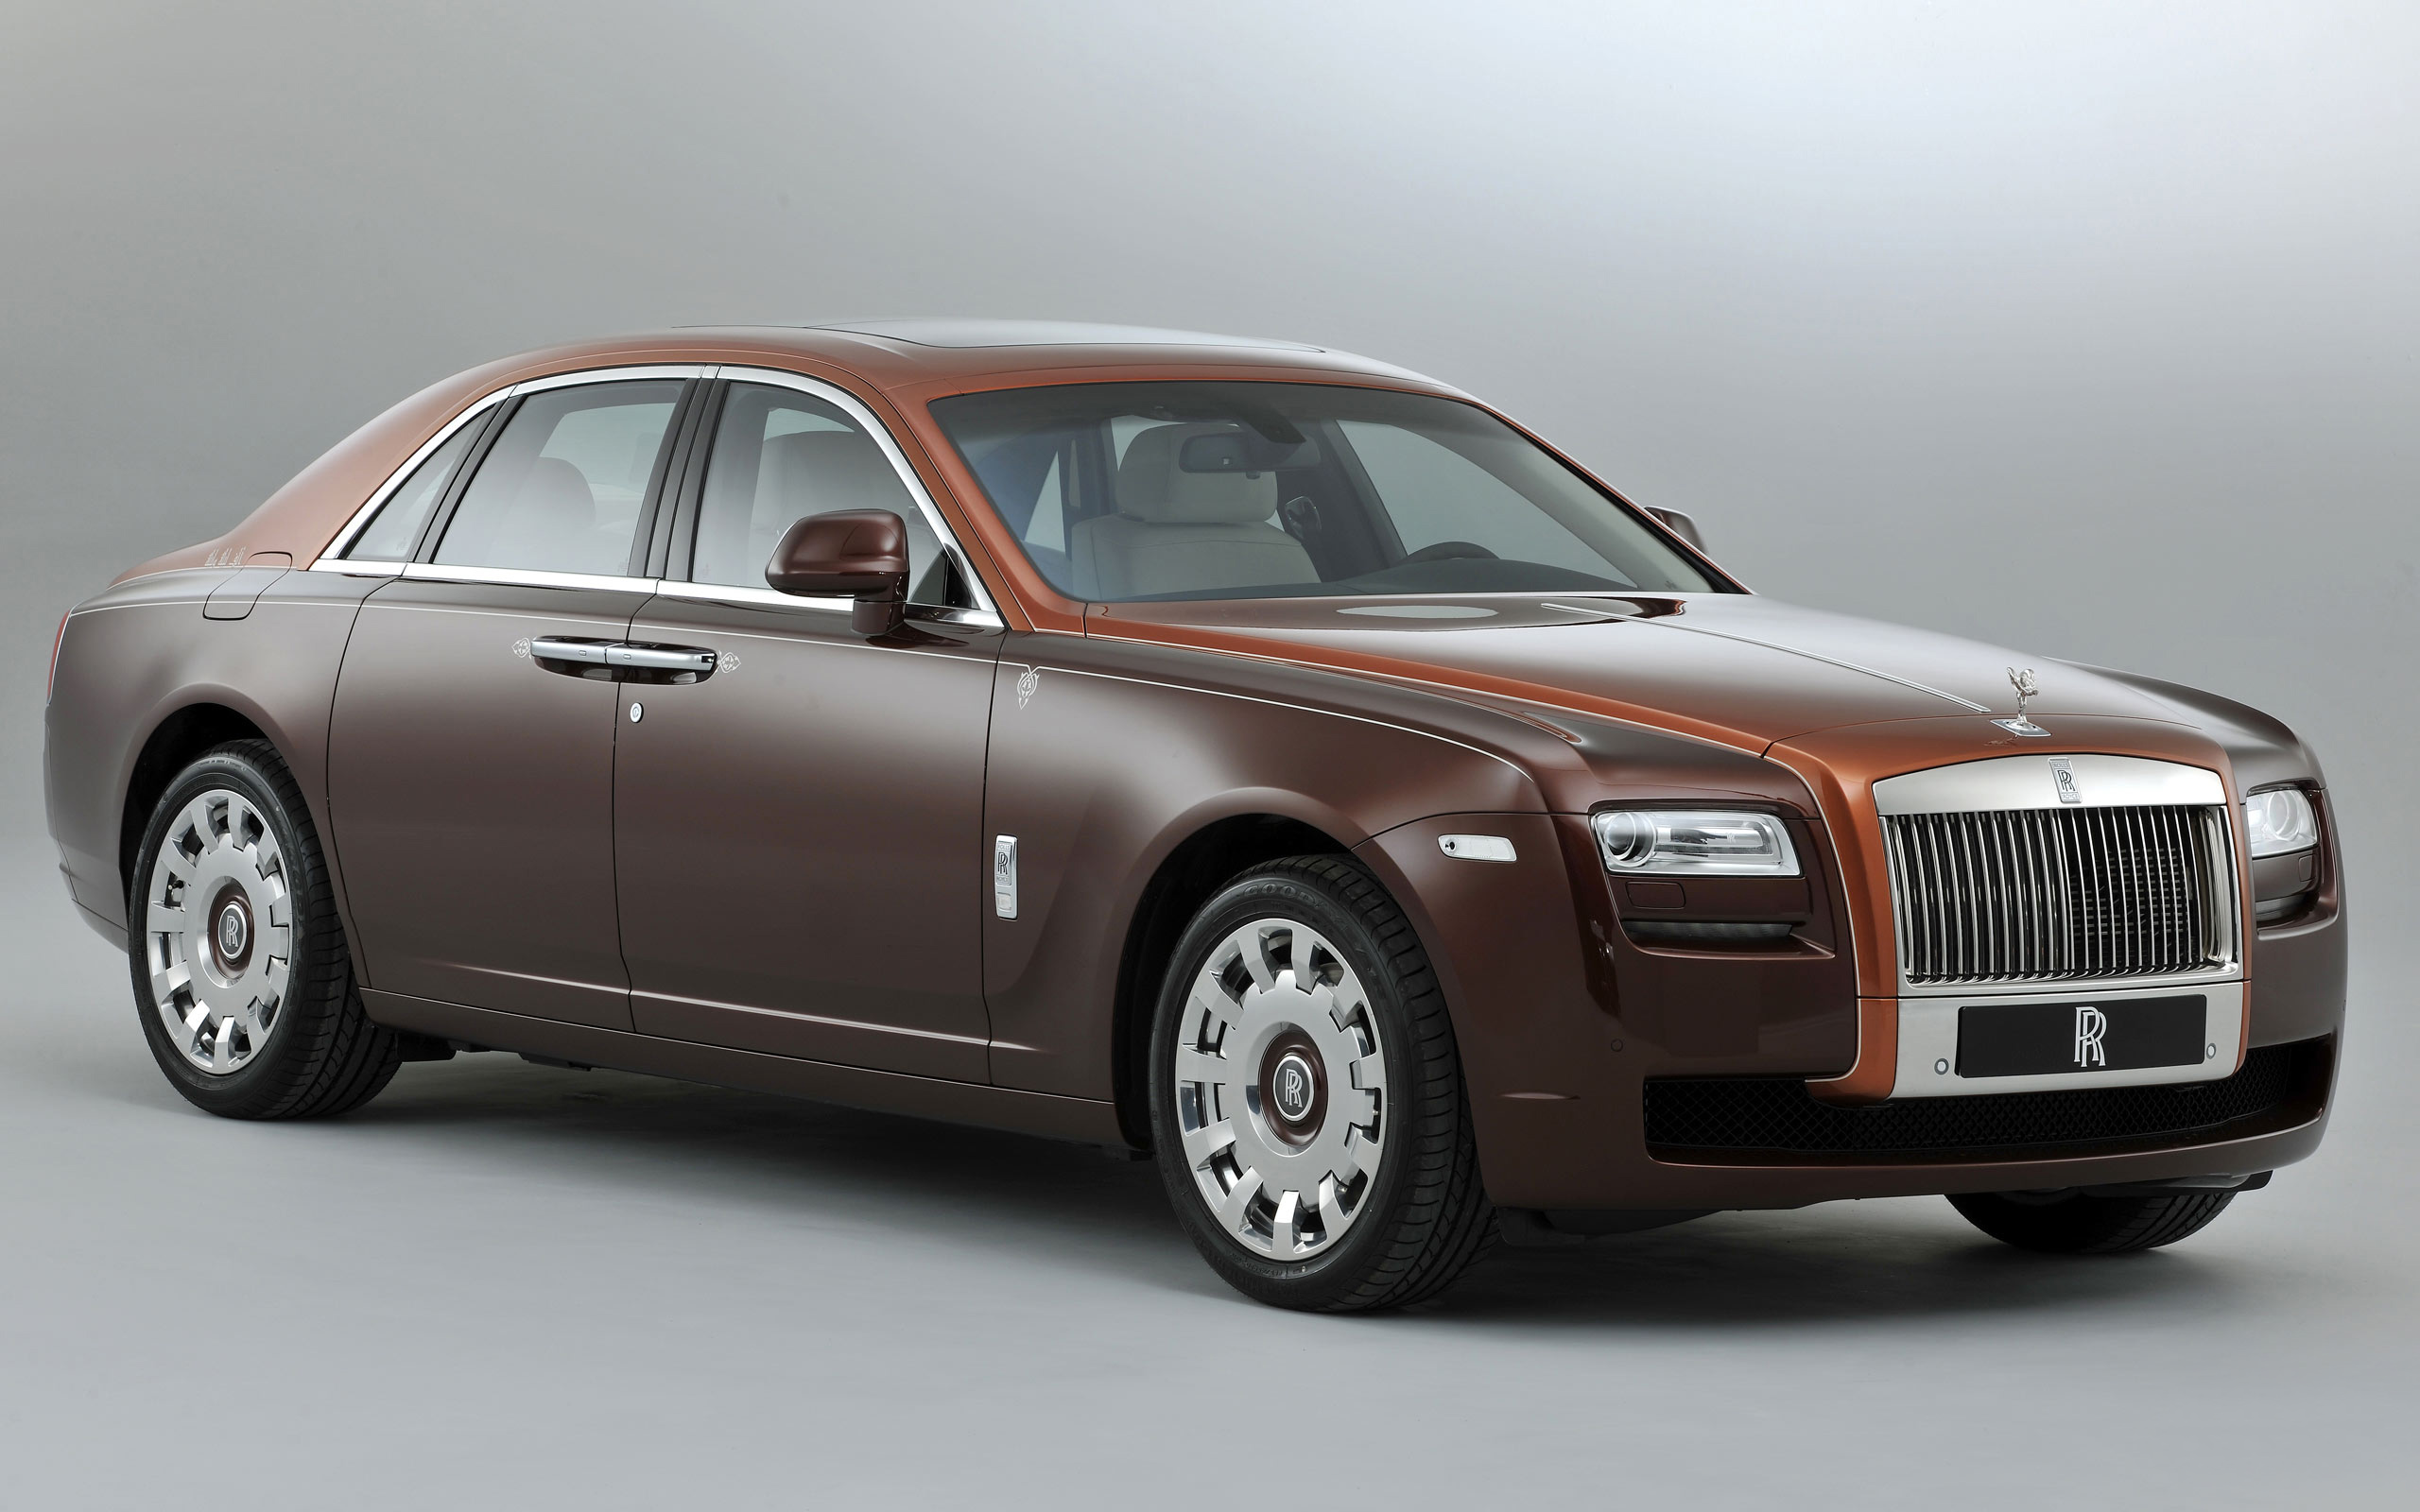 2013 Rolls Royce Ghost One Thousand And One Nights